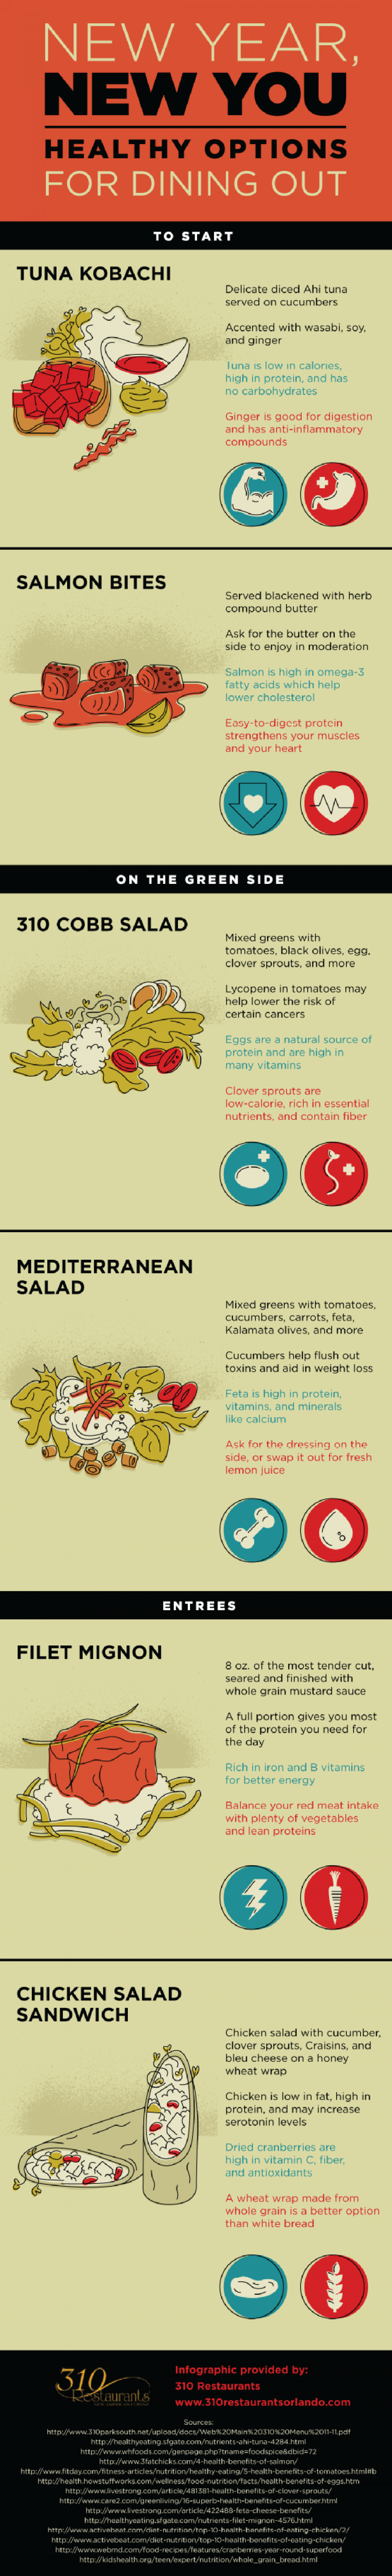 New Year, New You: Healthy Options for Dining Out Infographic